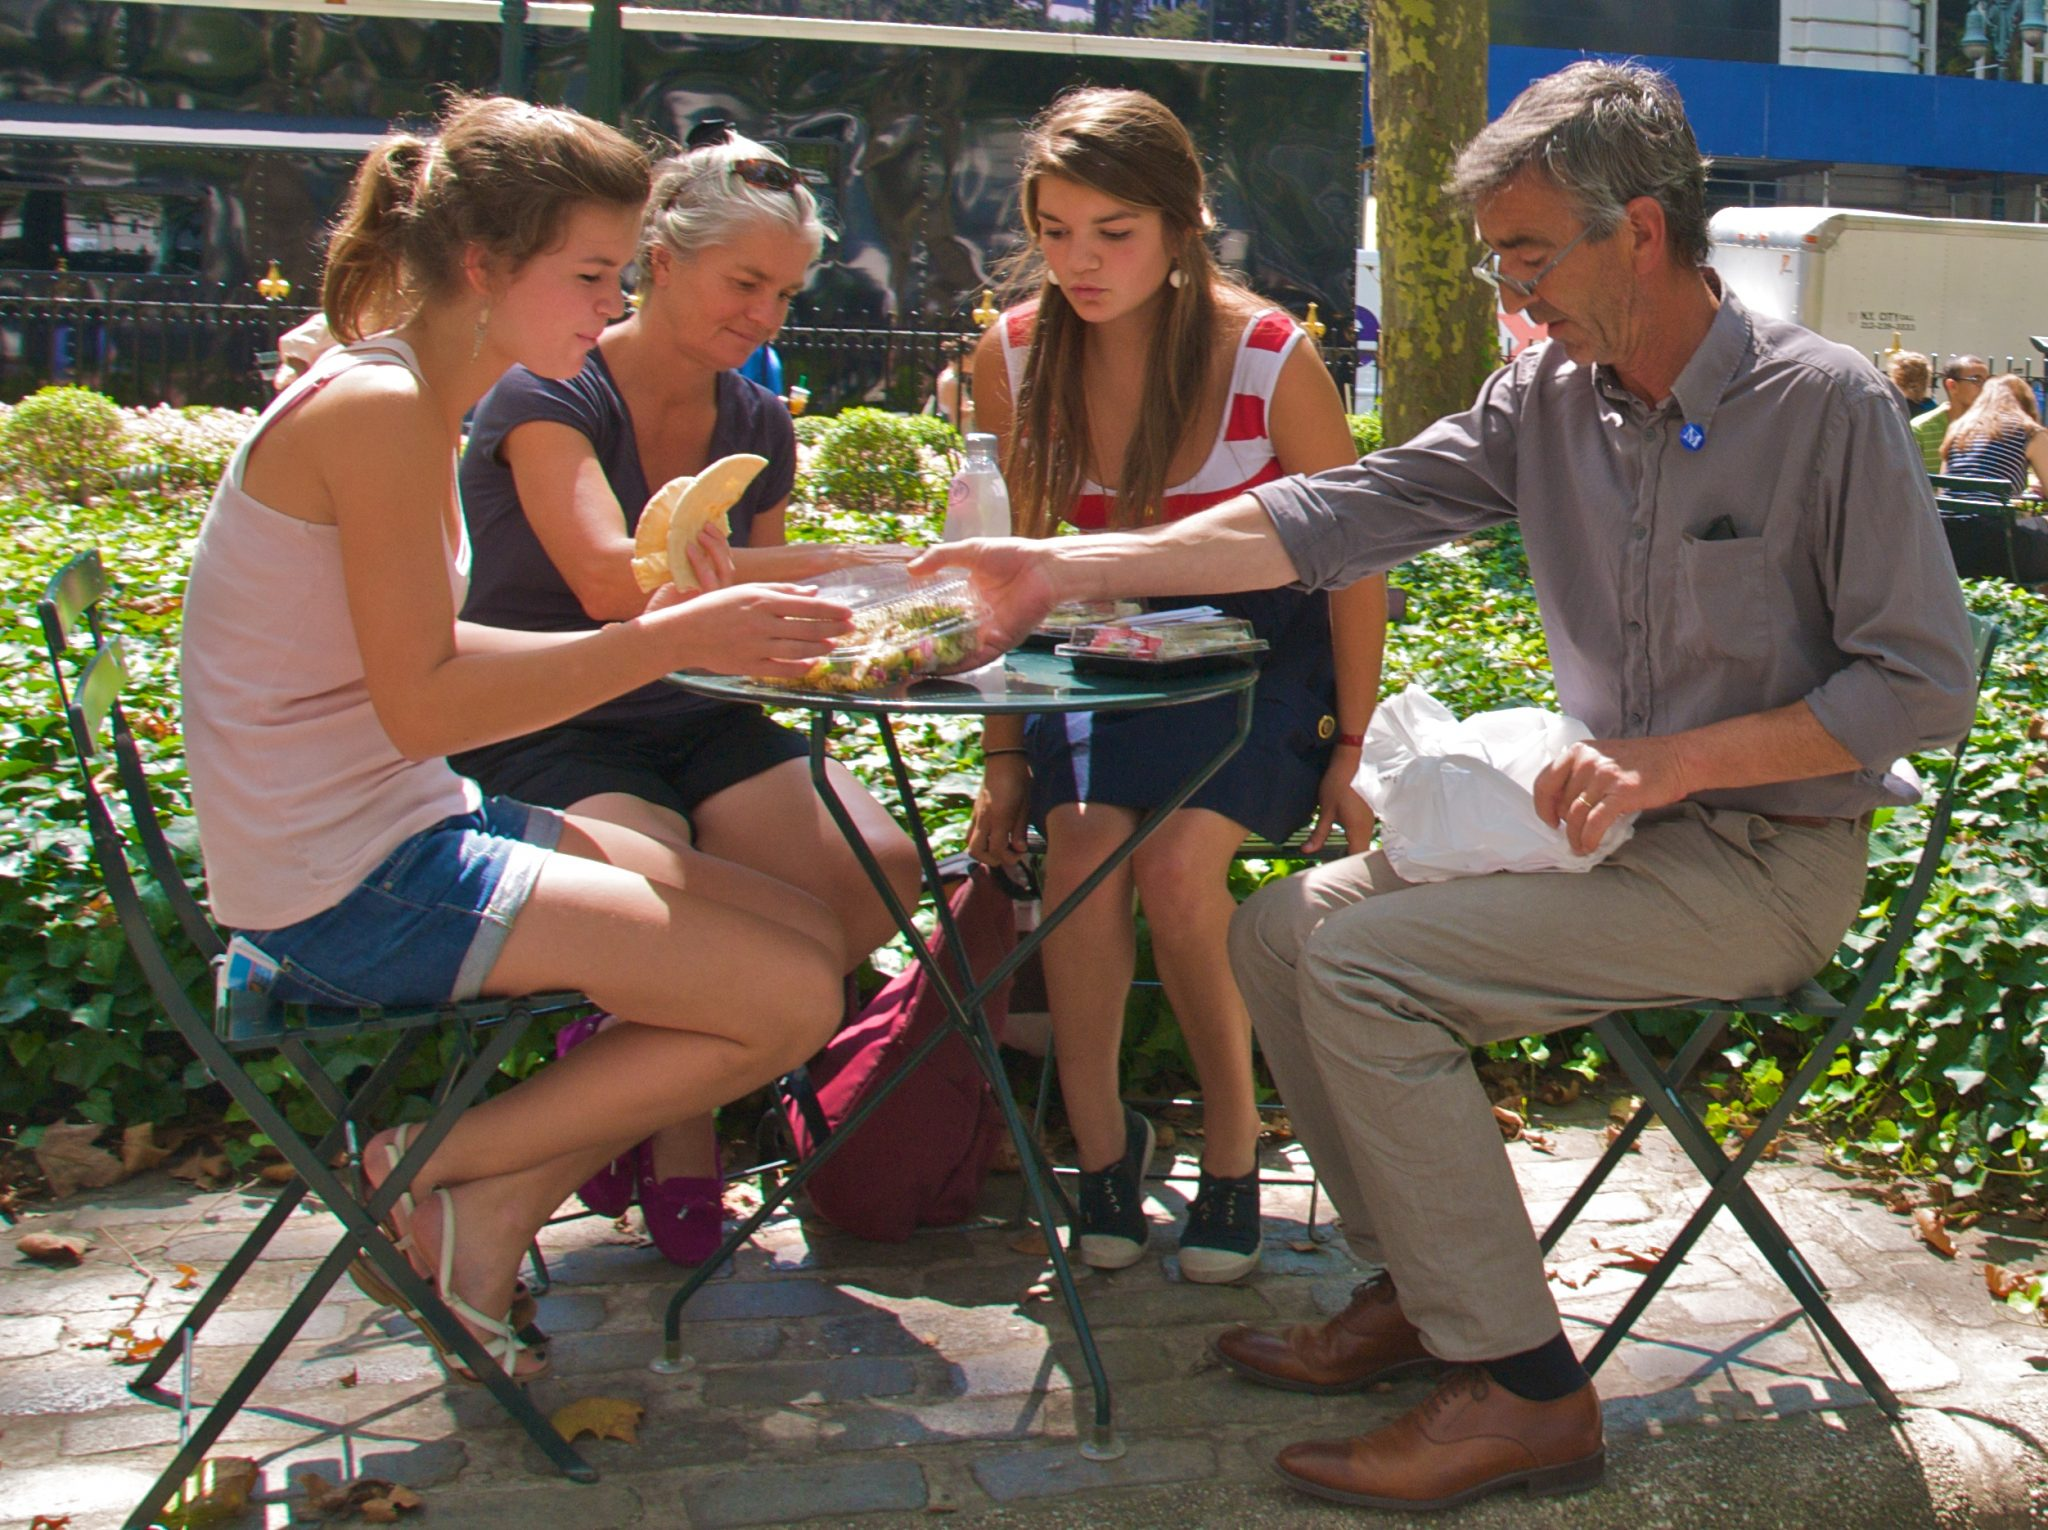 Summertime lunch at Bryant Park, Aug 2009 - 50